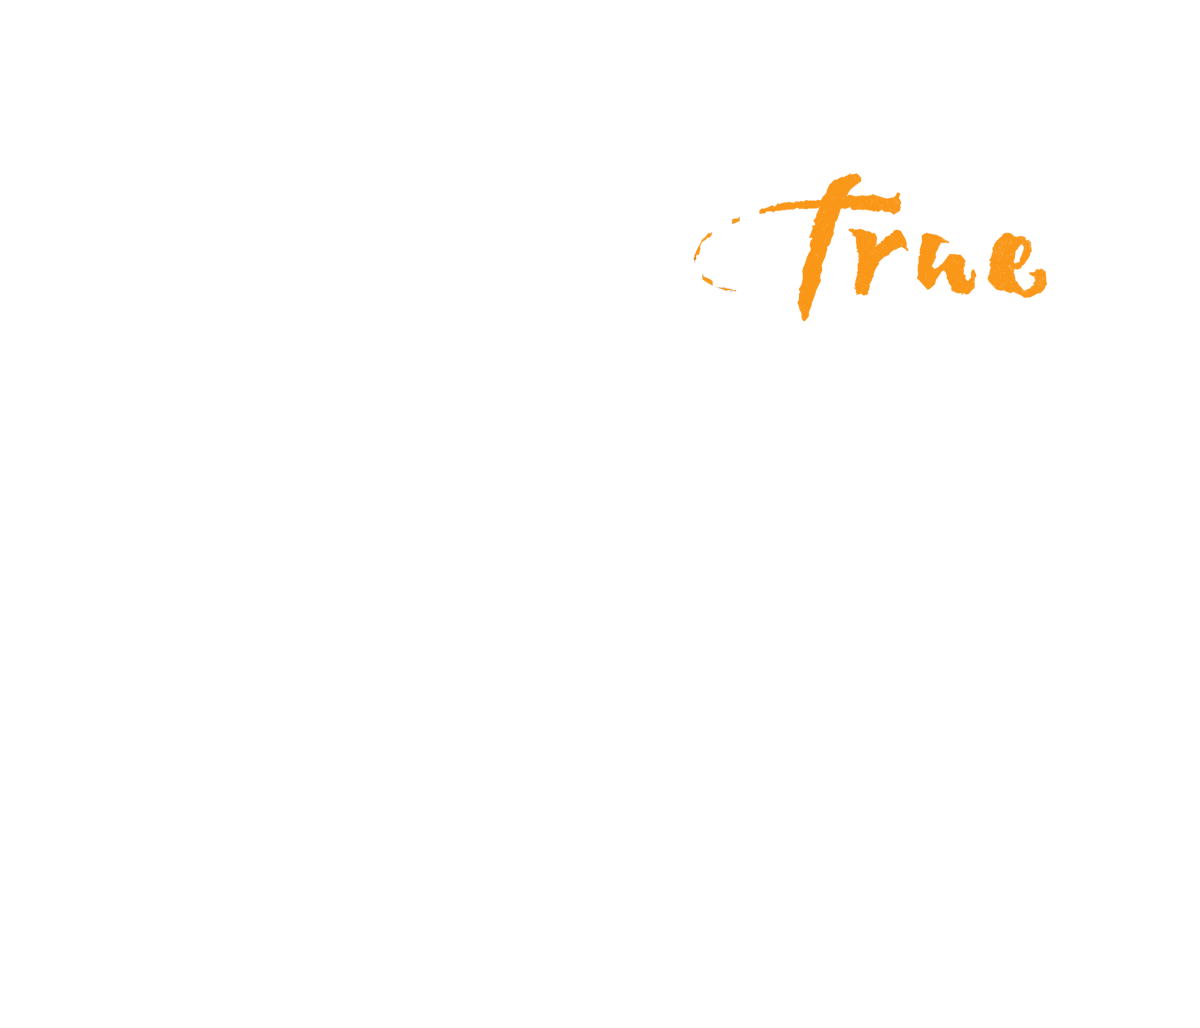 enchanted 8